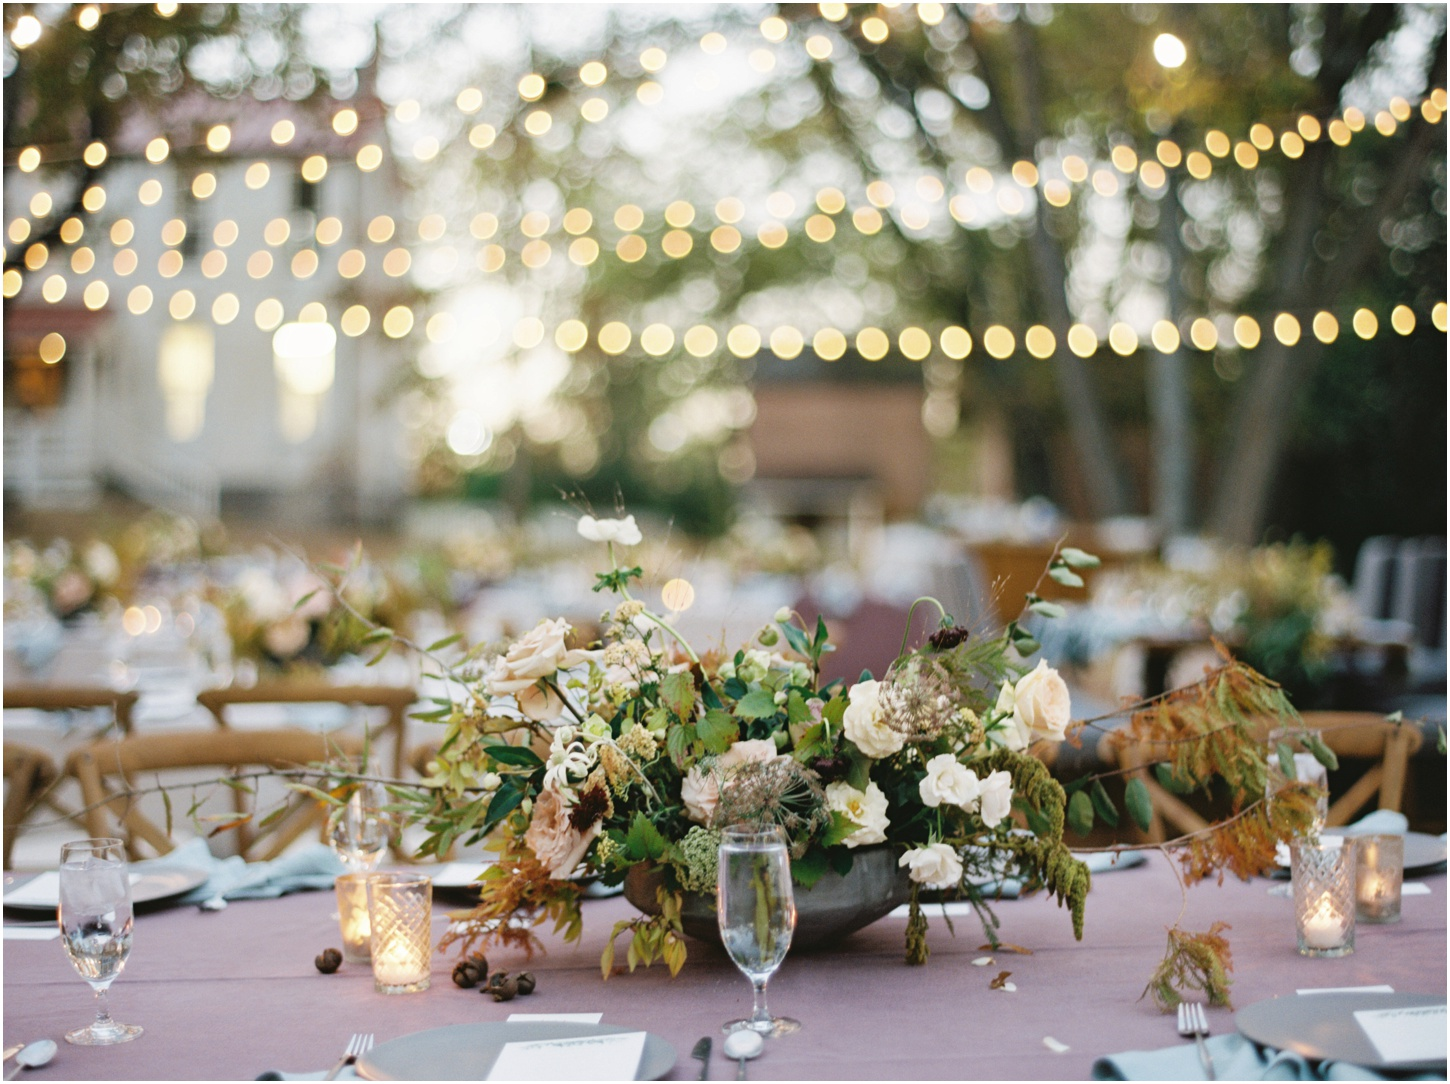 Twinkle light outdoor reception